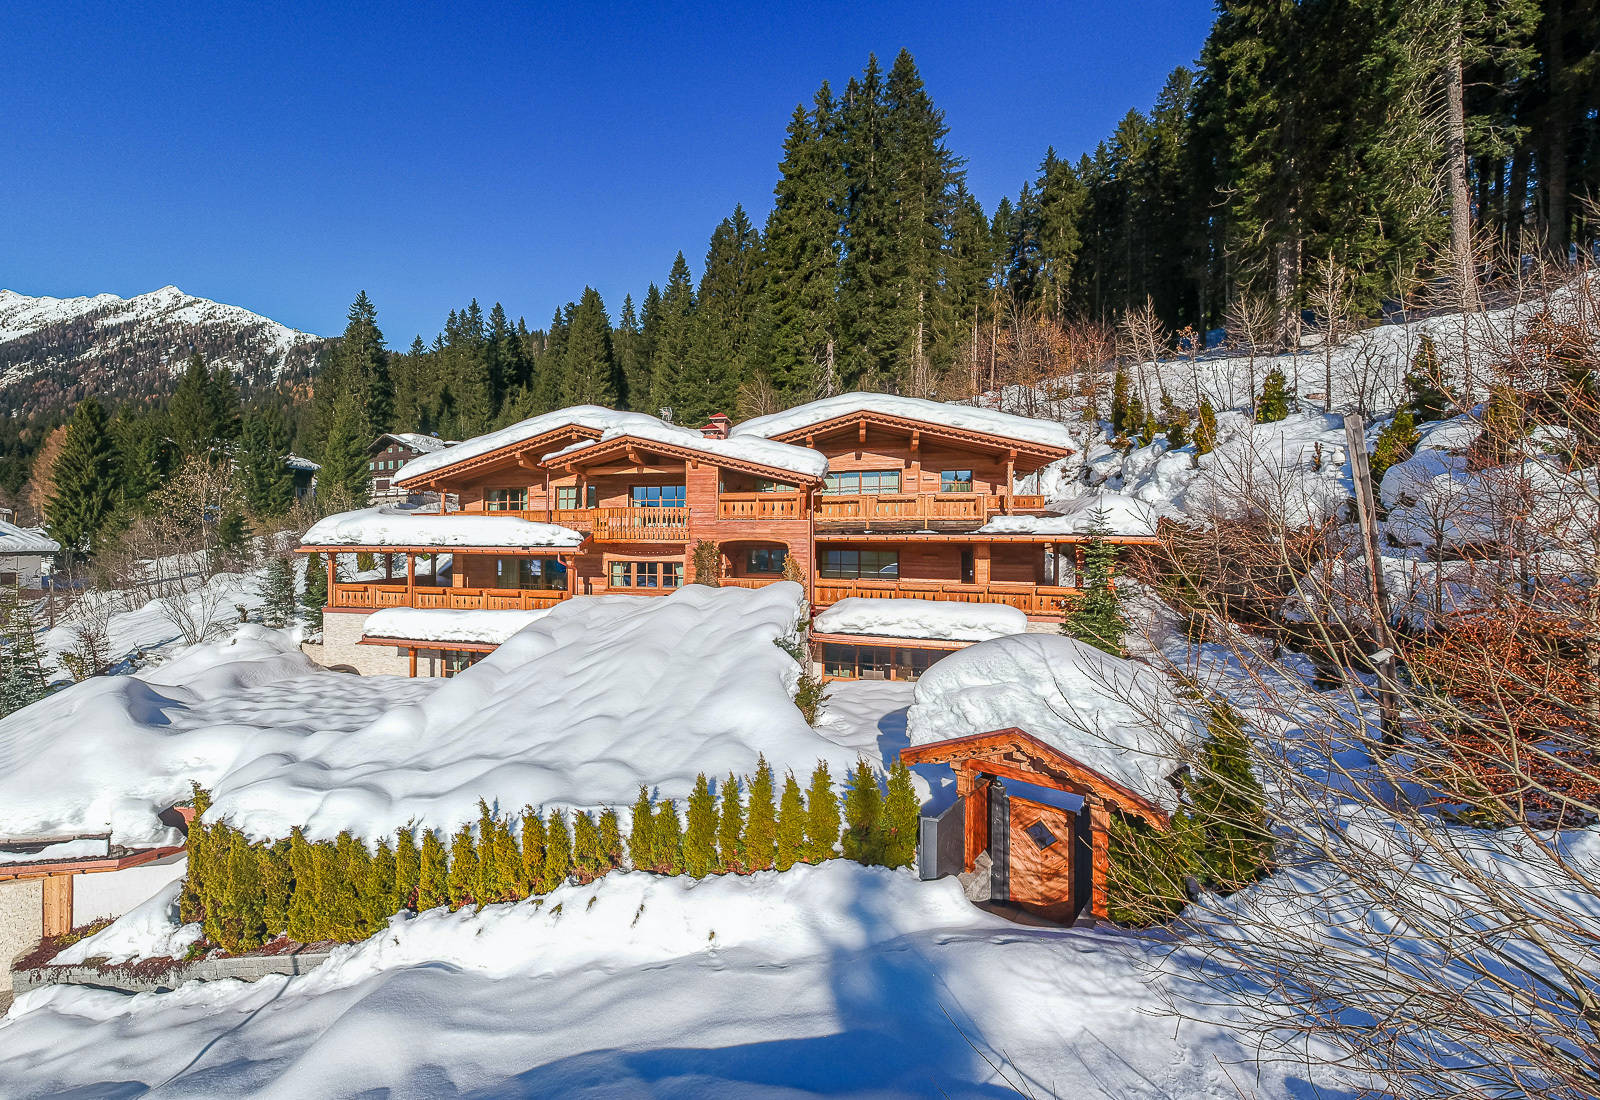 Luxurious chalet surrounded by nature for sale in Madonna di Campiglio